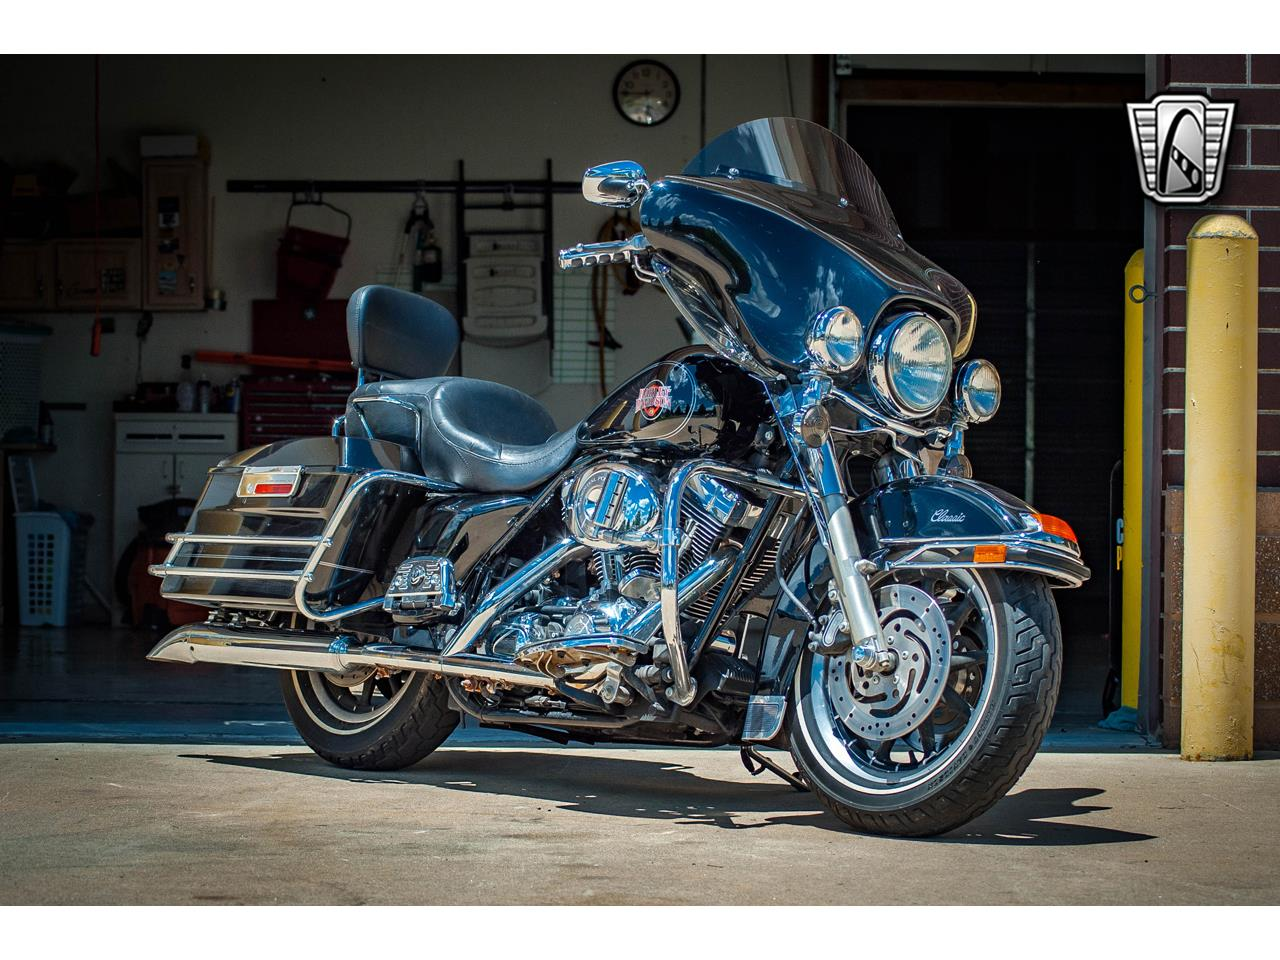 Large Picture of '04 Harley-Davidson Motorcycle located in Illinois Offered by Gateway Classic Cars - St. Louis - QD6F